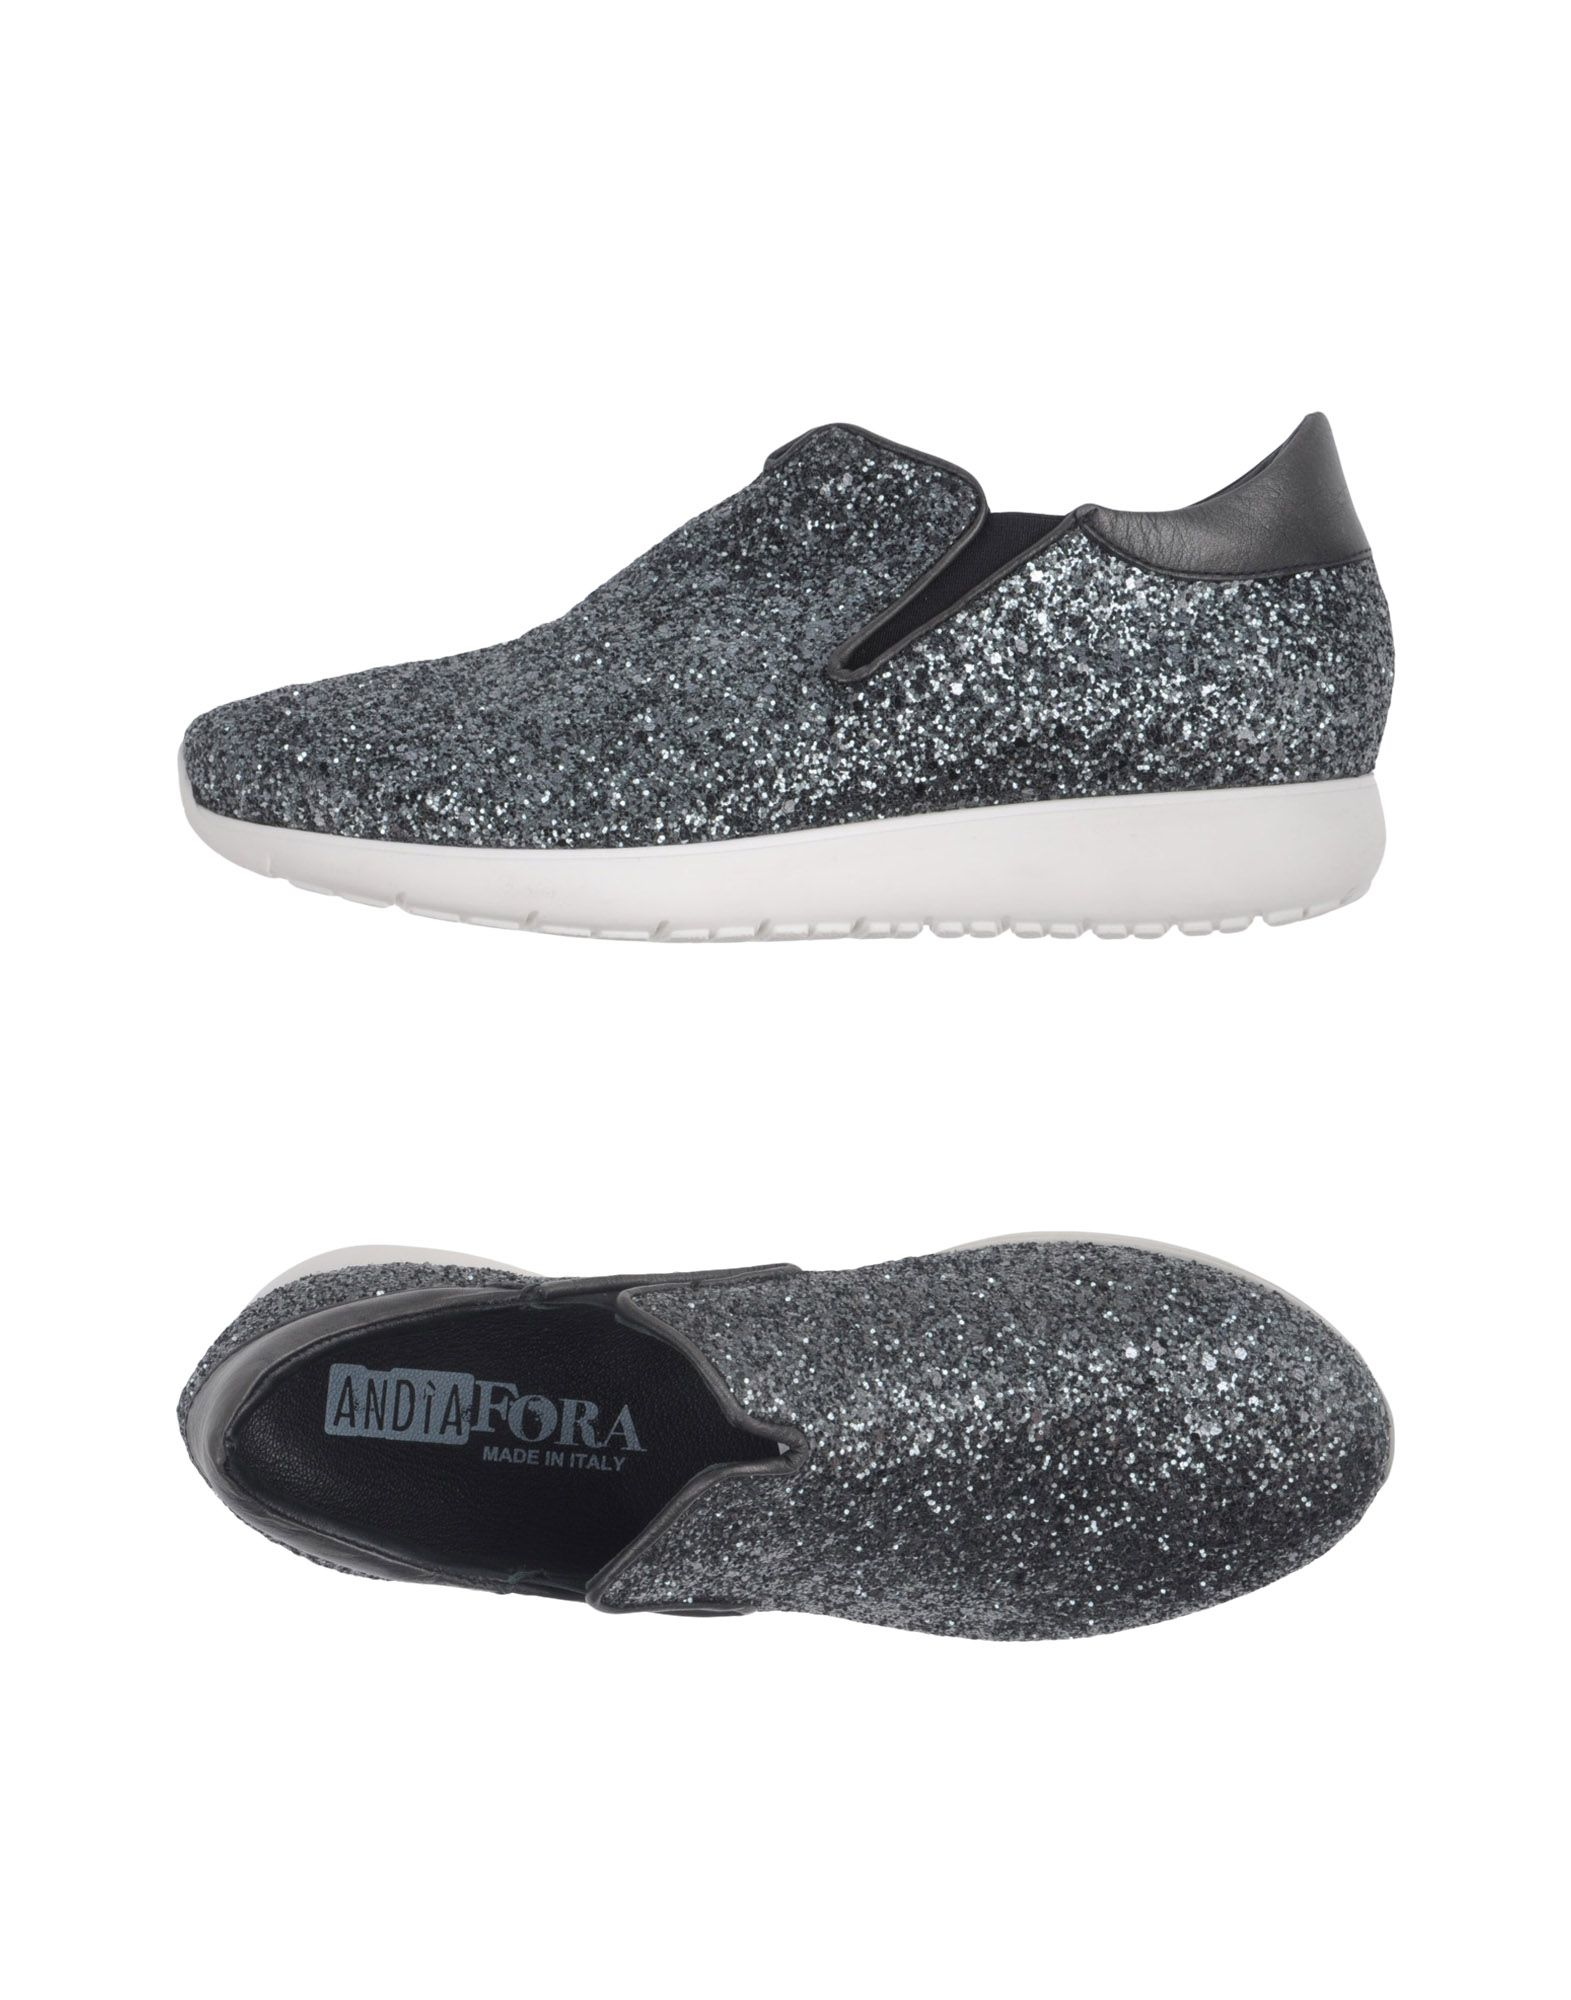 Sneakers Andìa Fora Donna - - Donna 11385974OS c7a24a